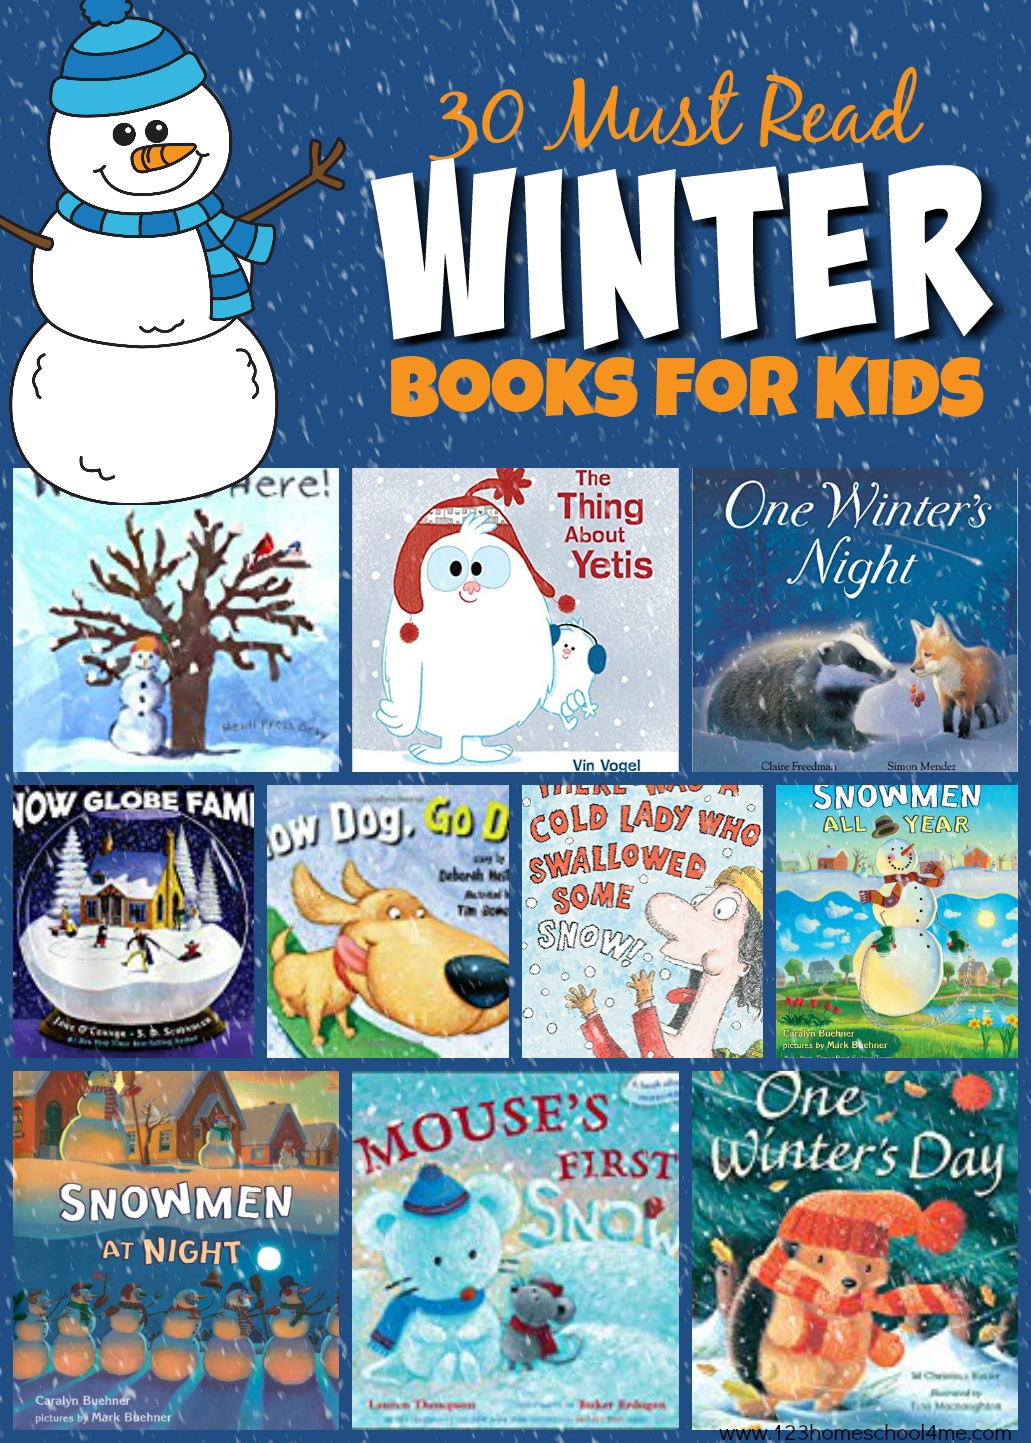 30 Must Read Winter Books for Kids